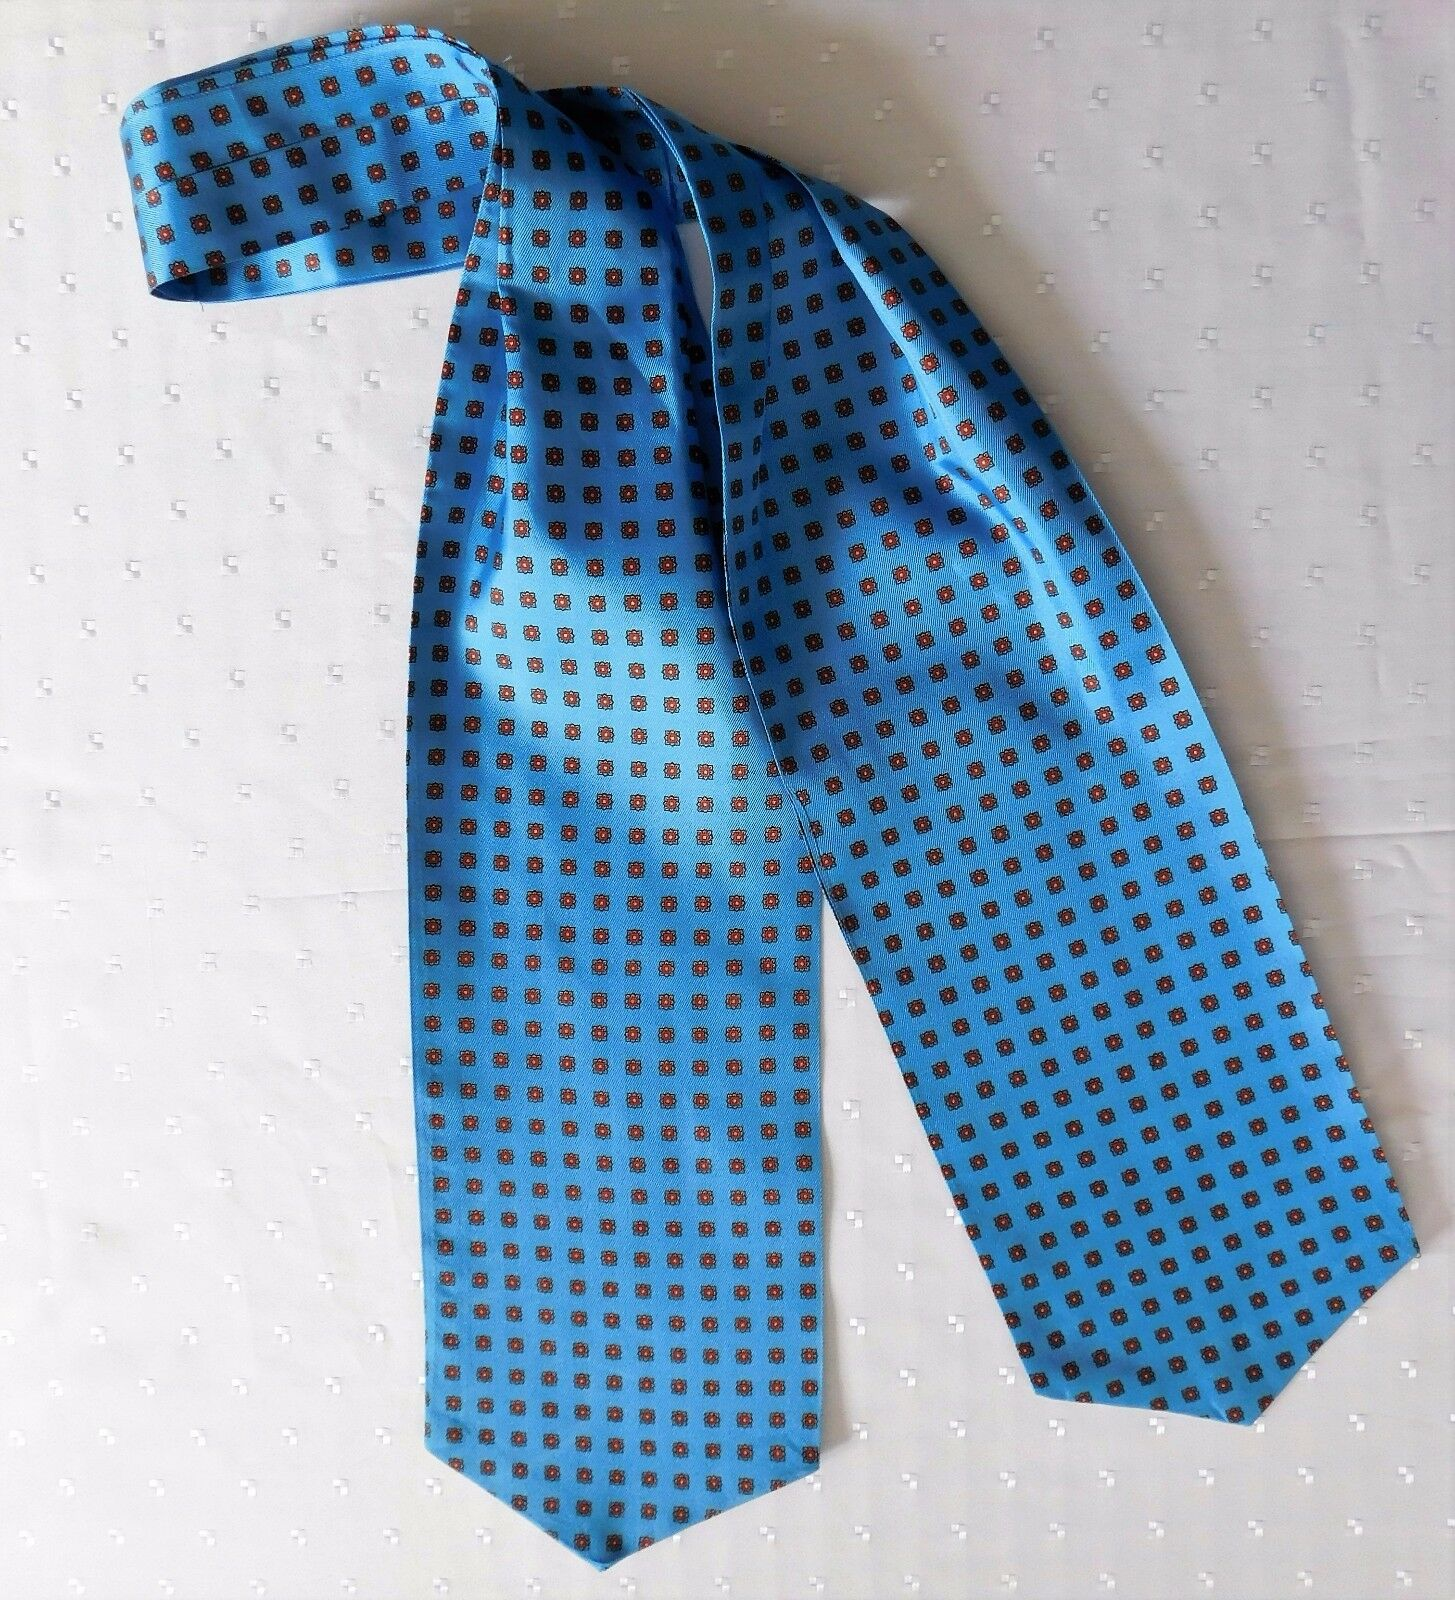 Tie Rack blue cravat vintage 1980s good condition Made in England traditional